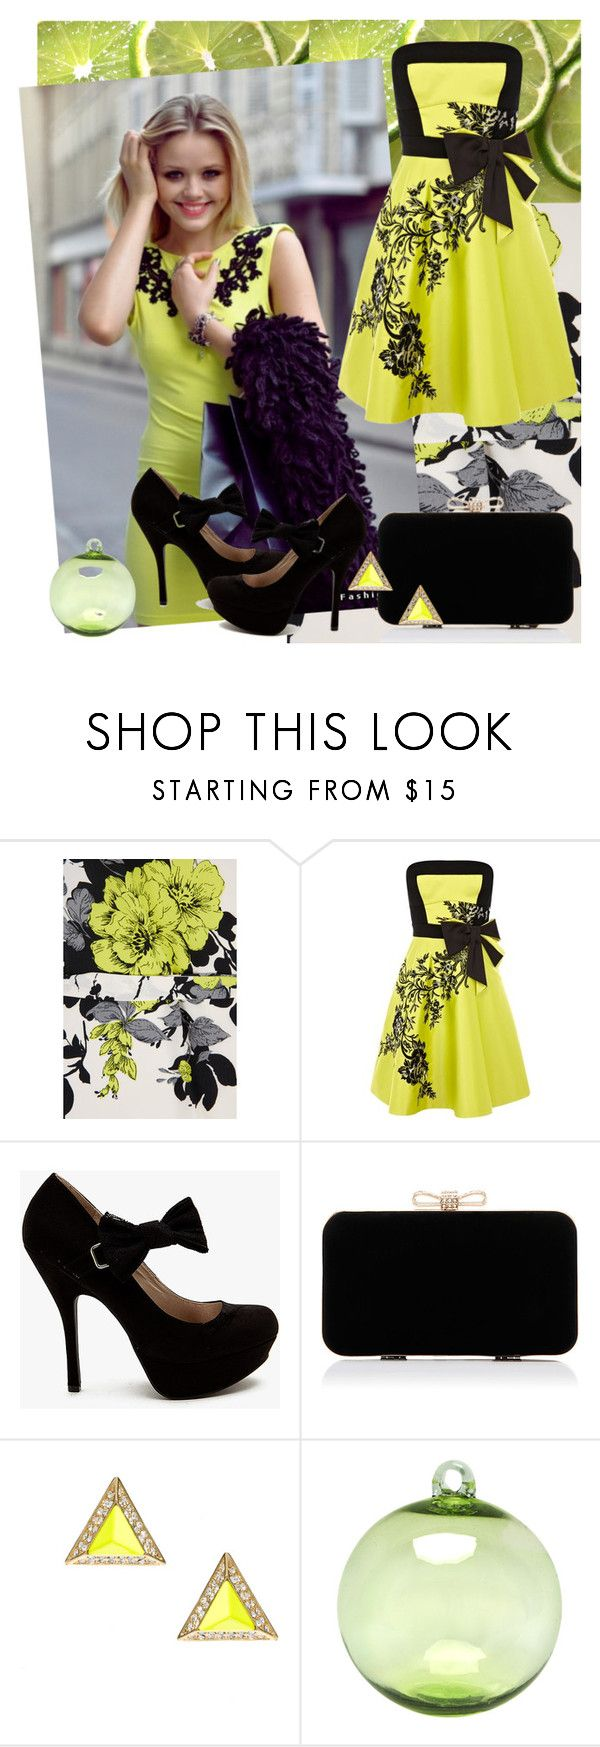 """Untitled #667"" by helenaki65 ❤ liked on Polyvore featuring Wallis, Karen Millen, Forever New and Love Rocks"